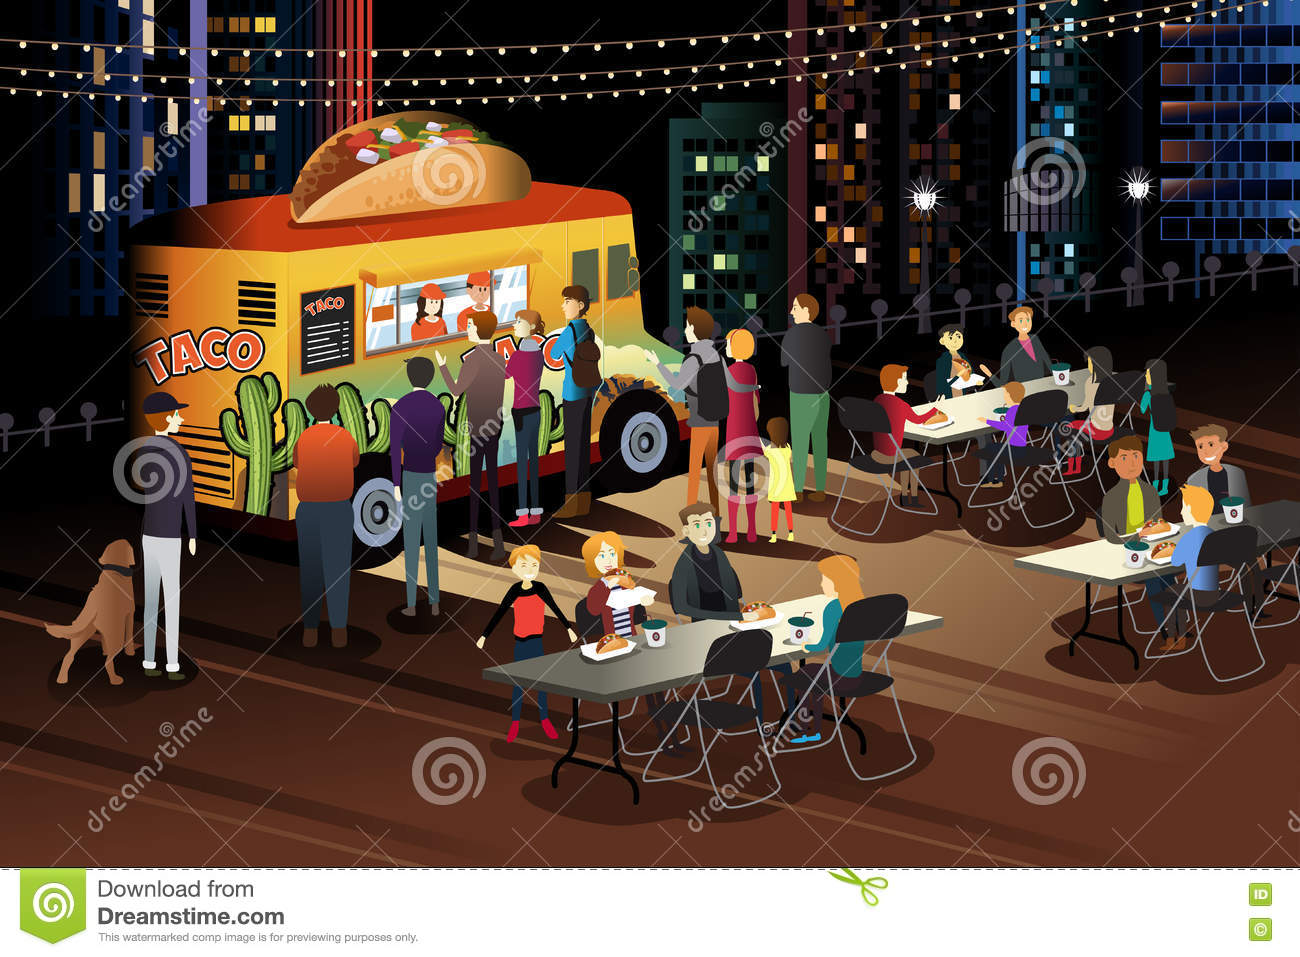 Customer Eating From Food Truck